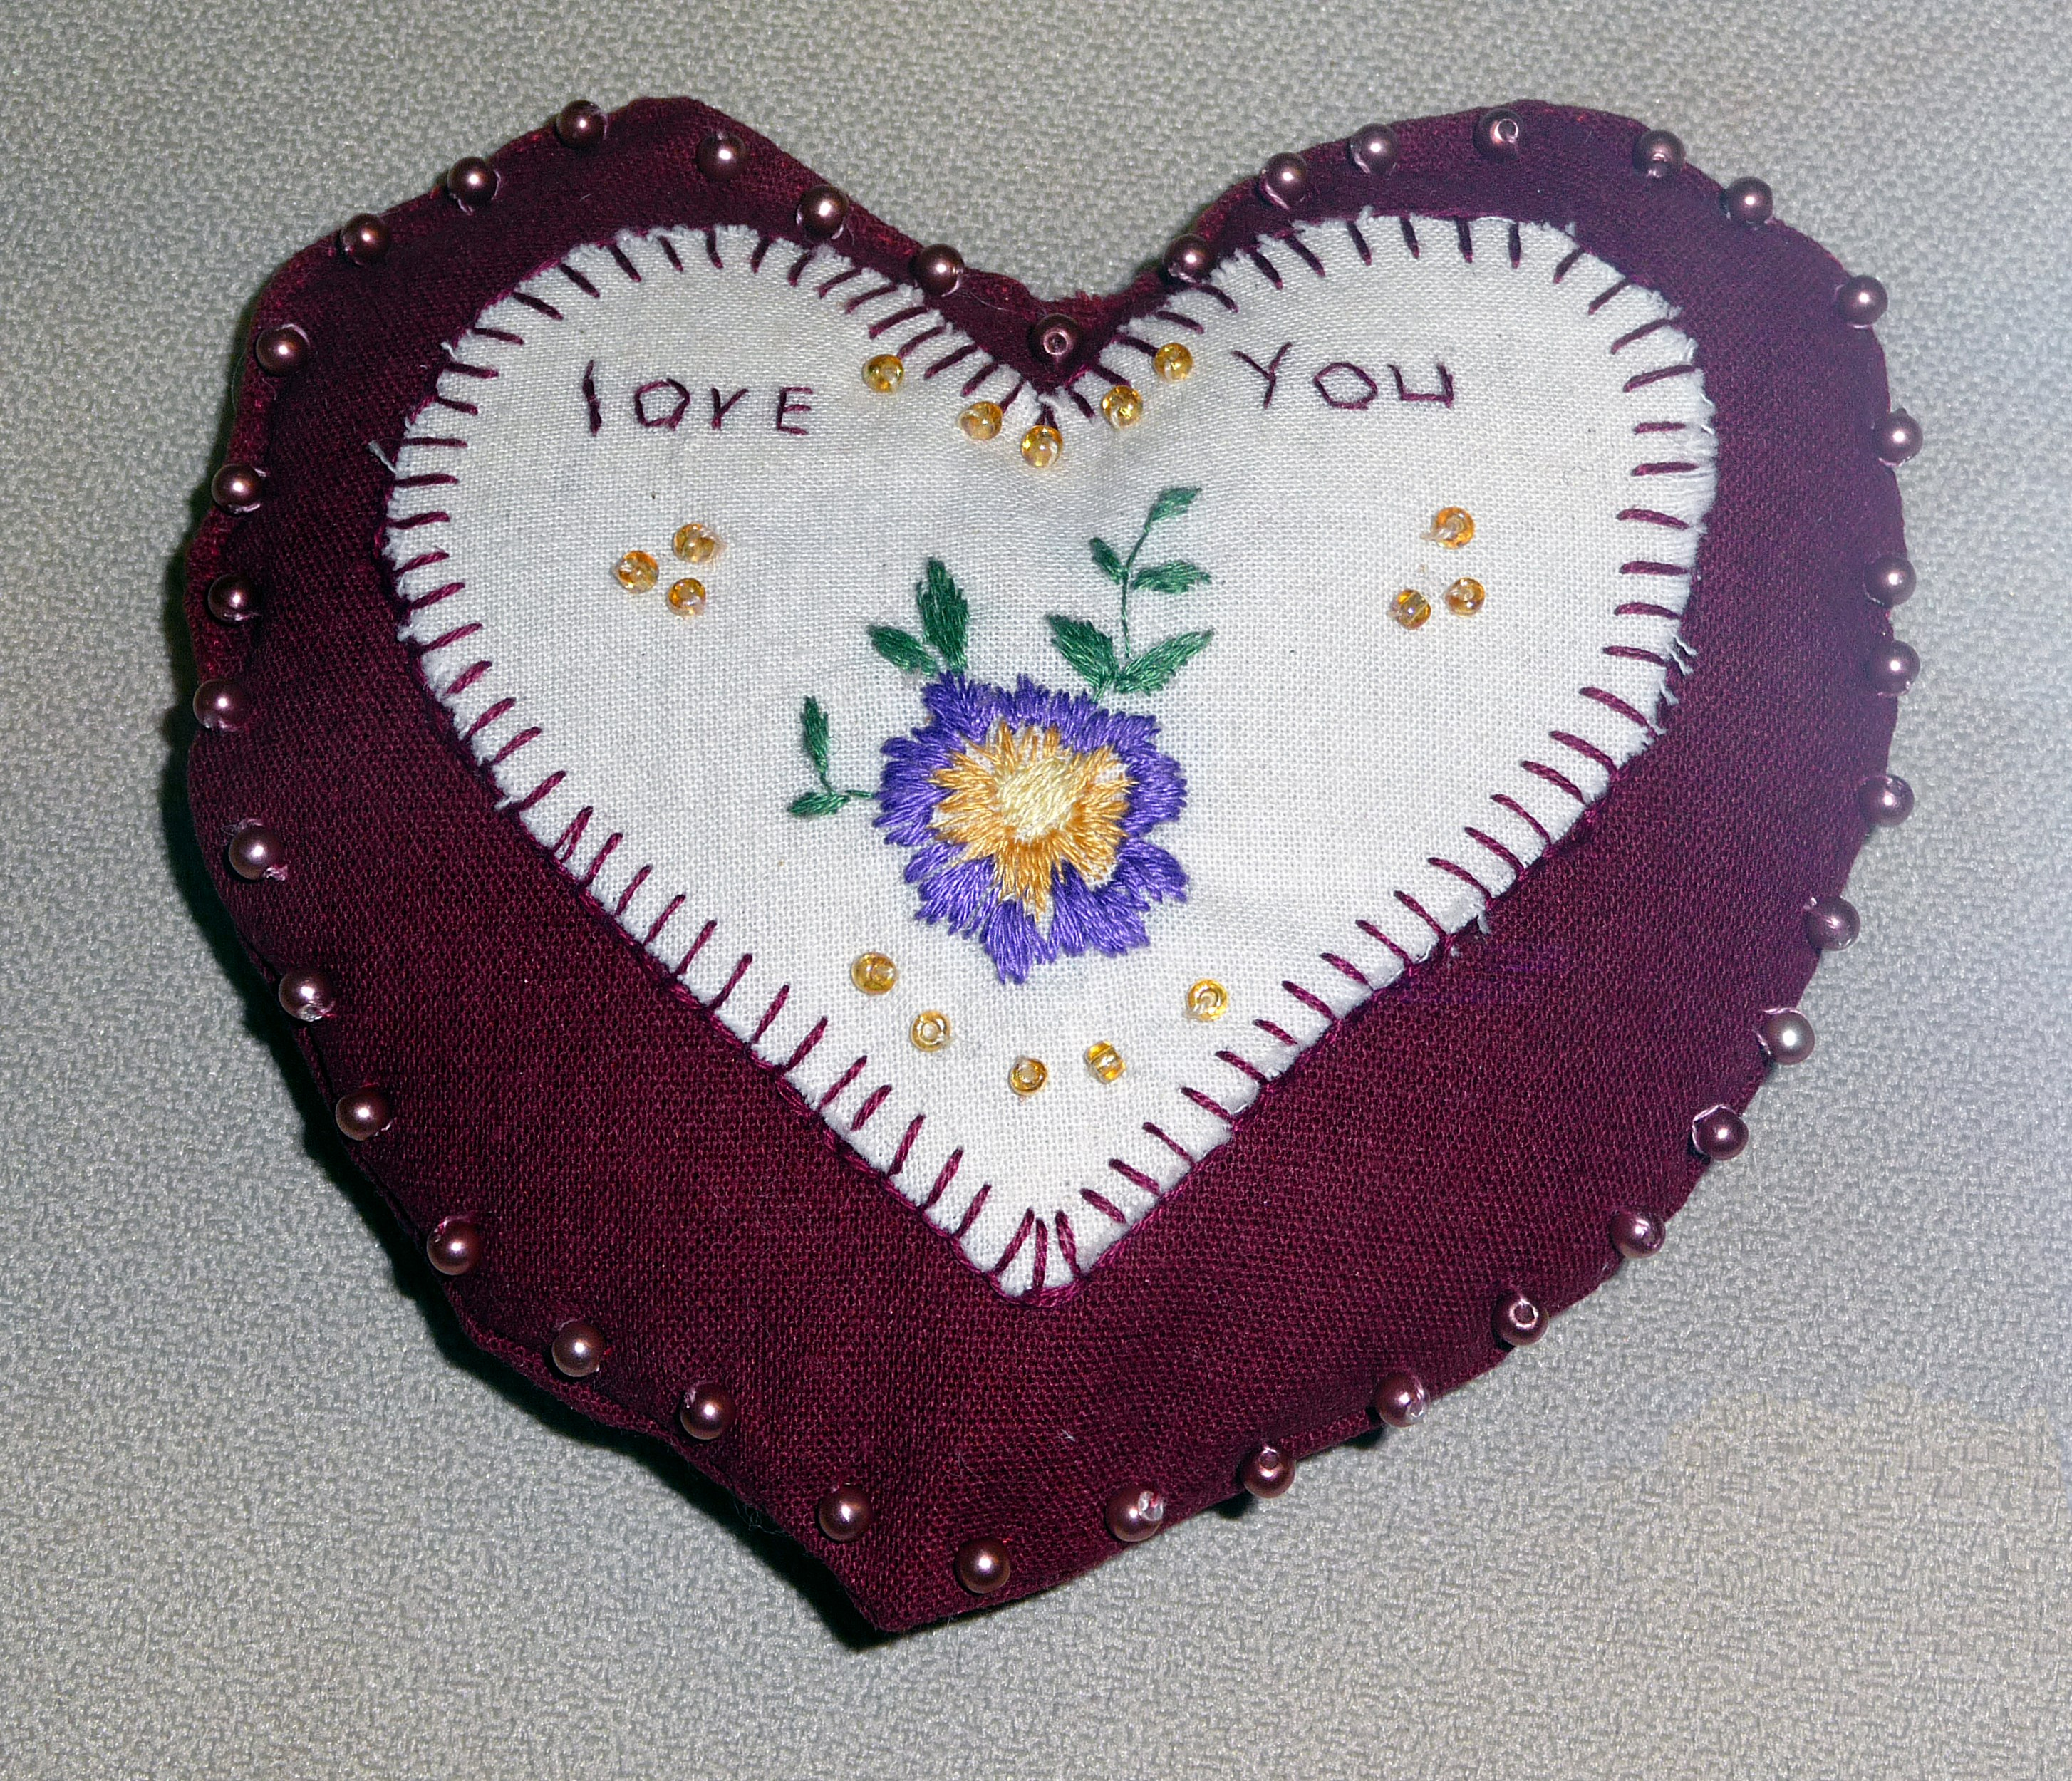 pincushion to commemorate World War 1 made by Frances McLaren in memory of Patrick Conway